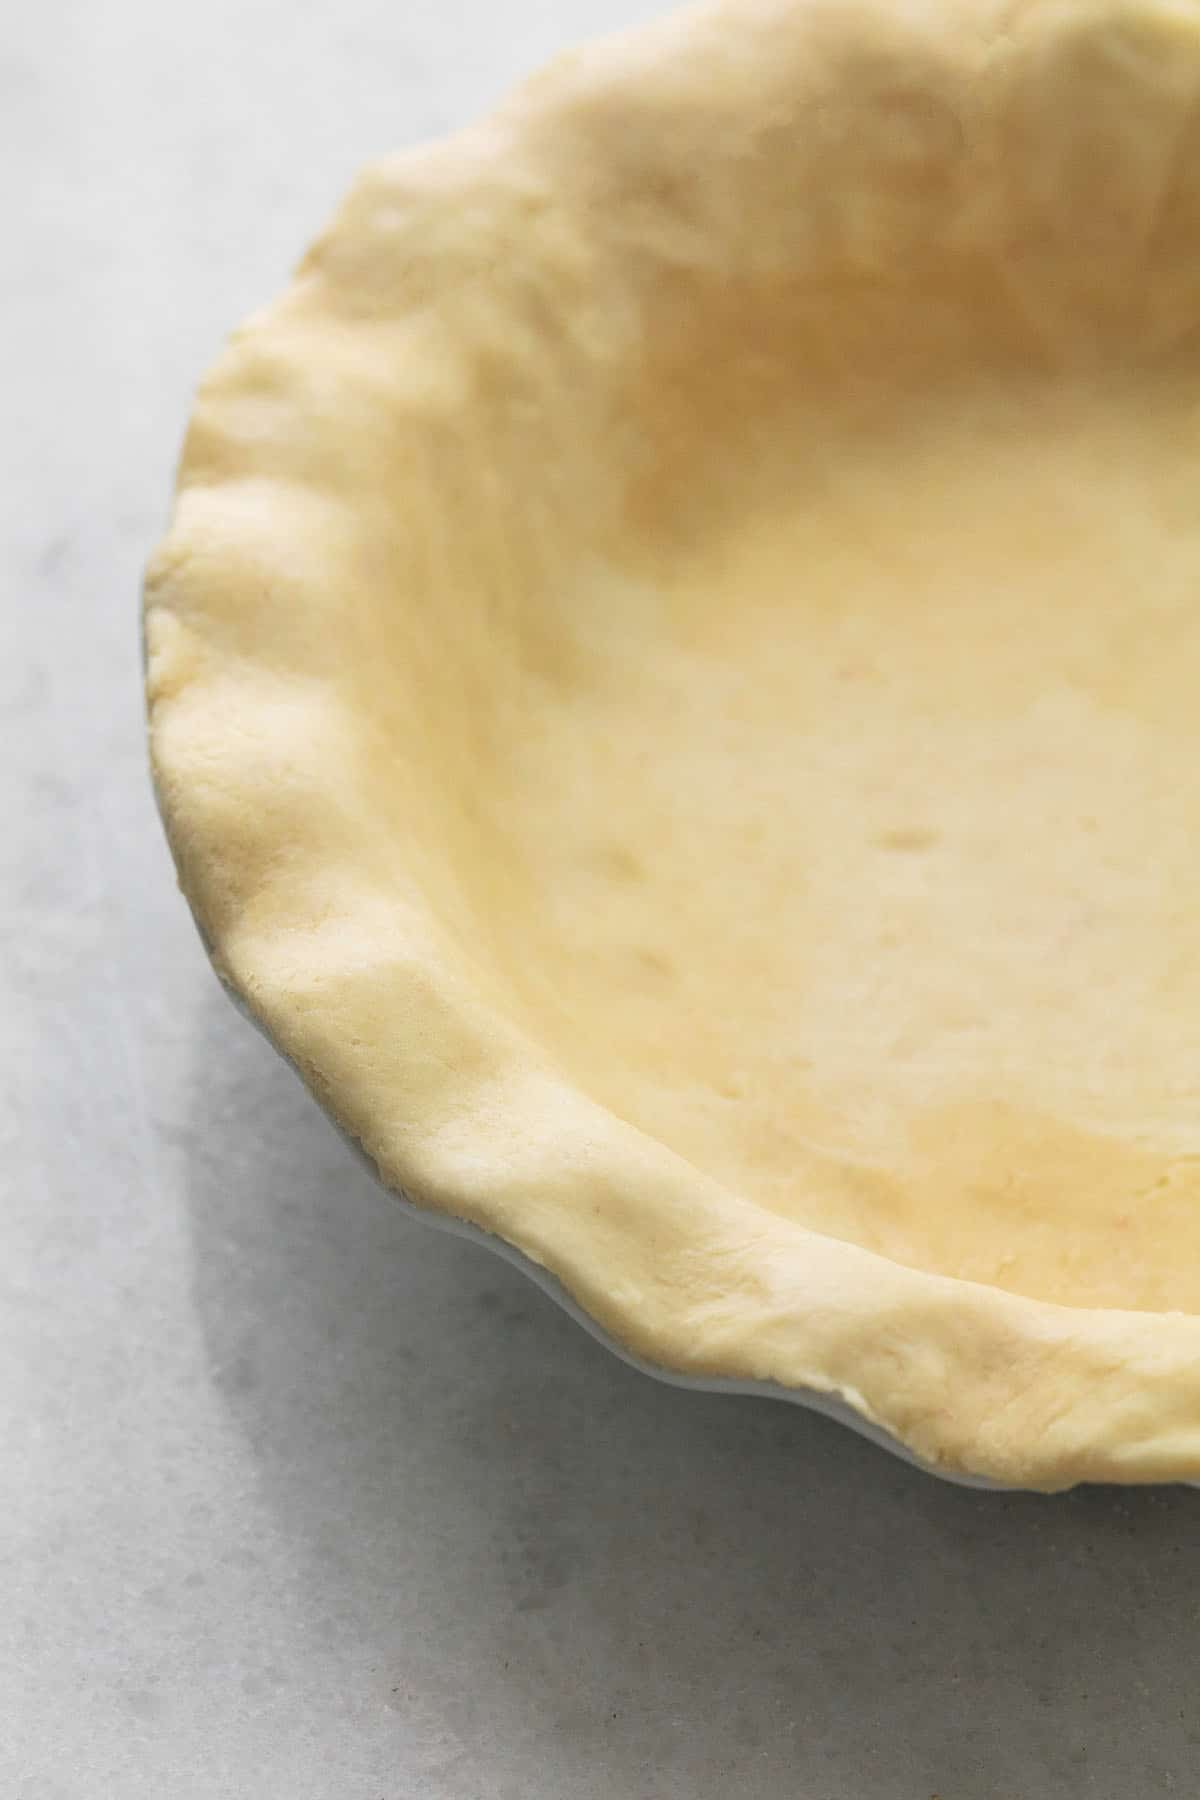 close up of unbaked pie crust in a pan.